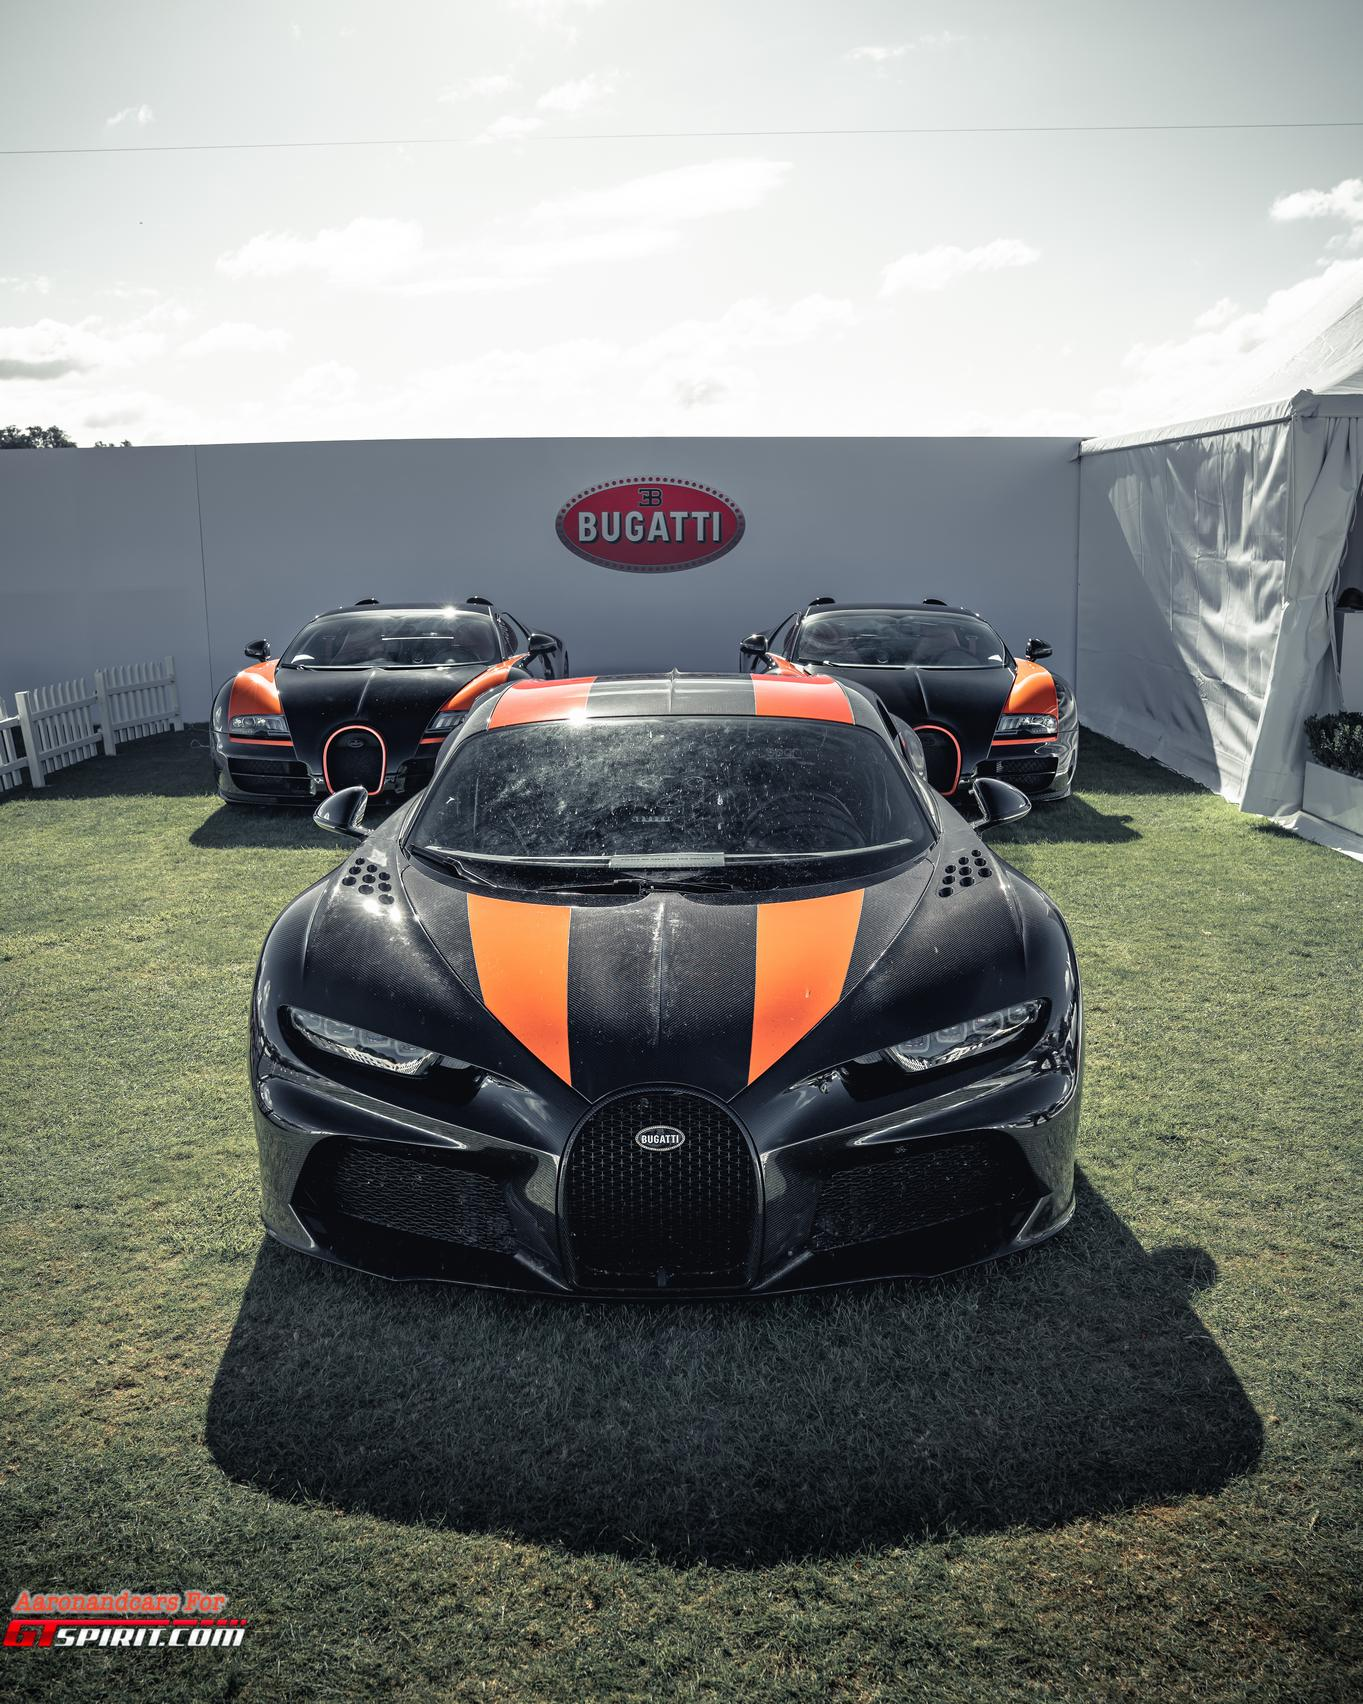 Salon Prive 2020 Bugatti Chiron Super Sport